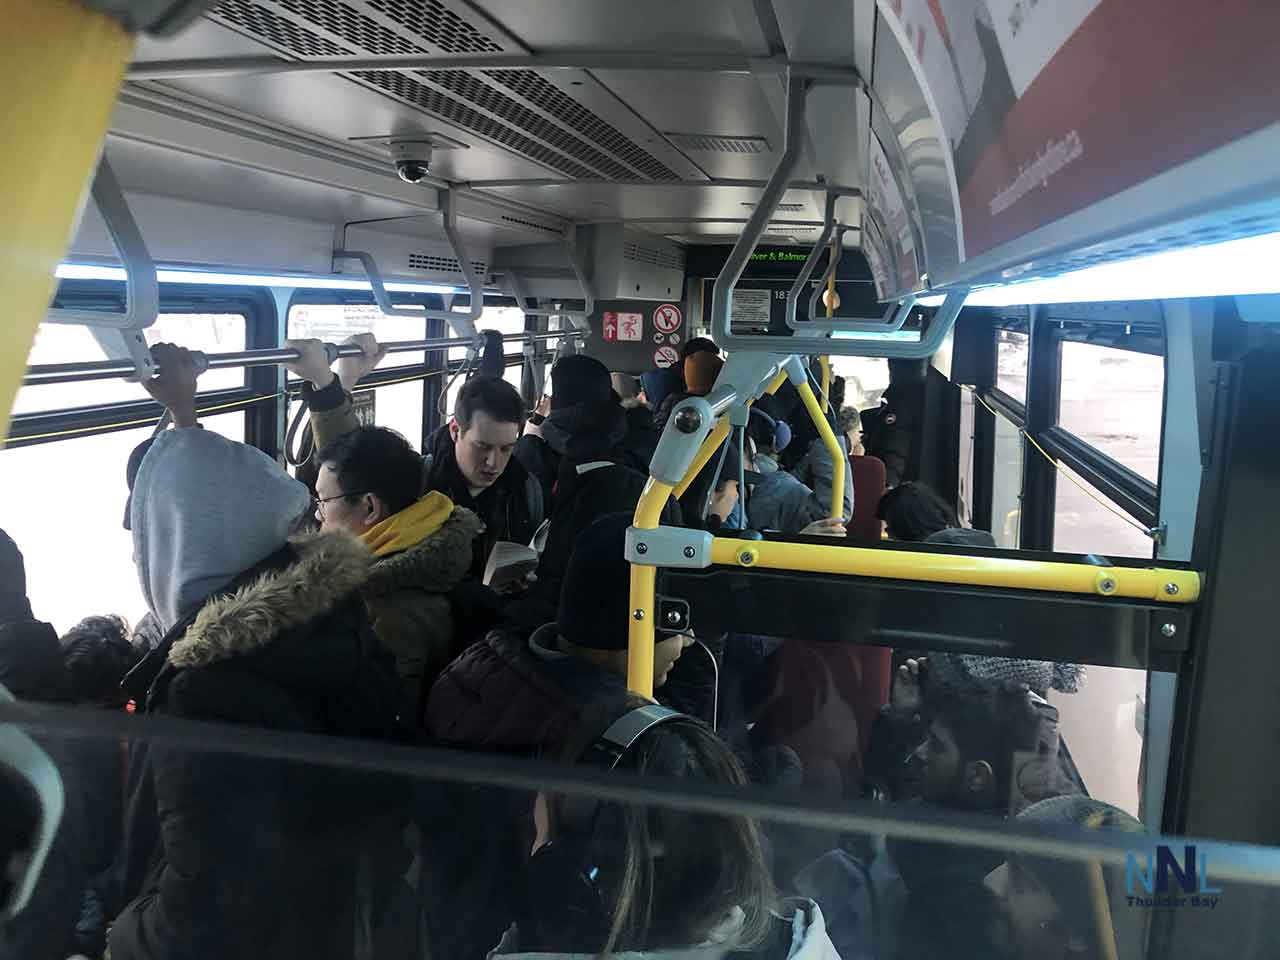 A Very Crowded Thunder Bay Transit bus on the Crosstown Route